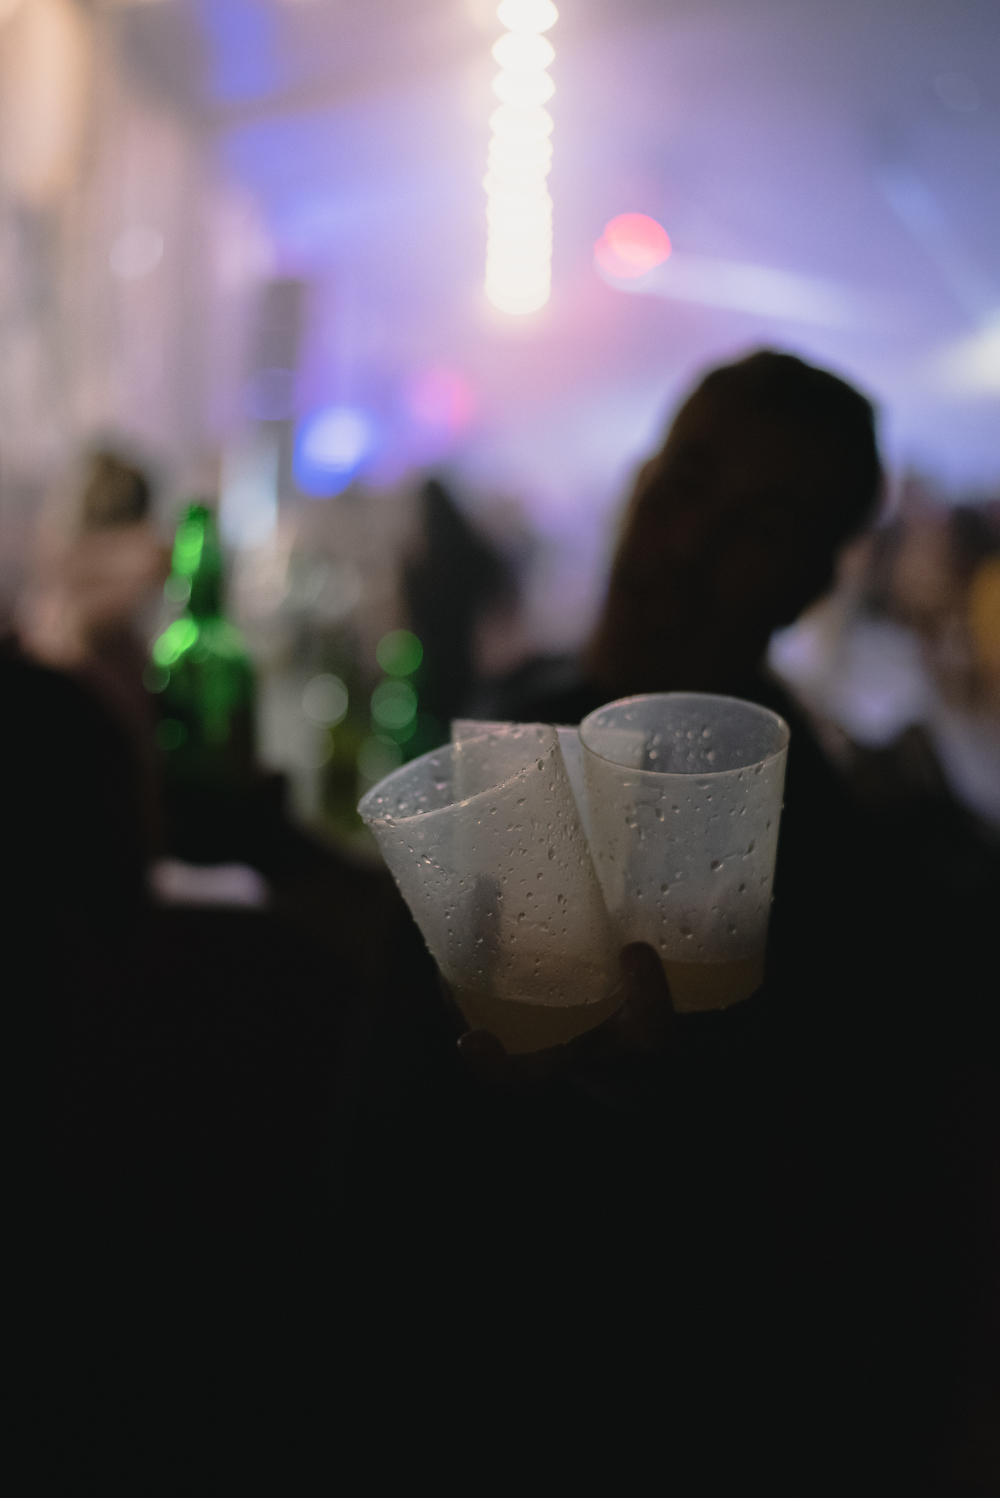 Pouring Asturian cider at a fiesta in Gijon - Asturias, northern Spain by Ben Holbrook from DriftwoodJournals.com